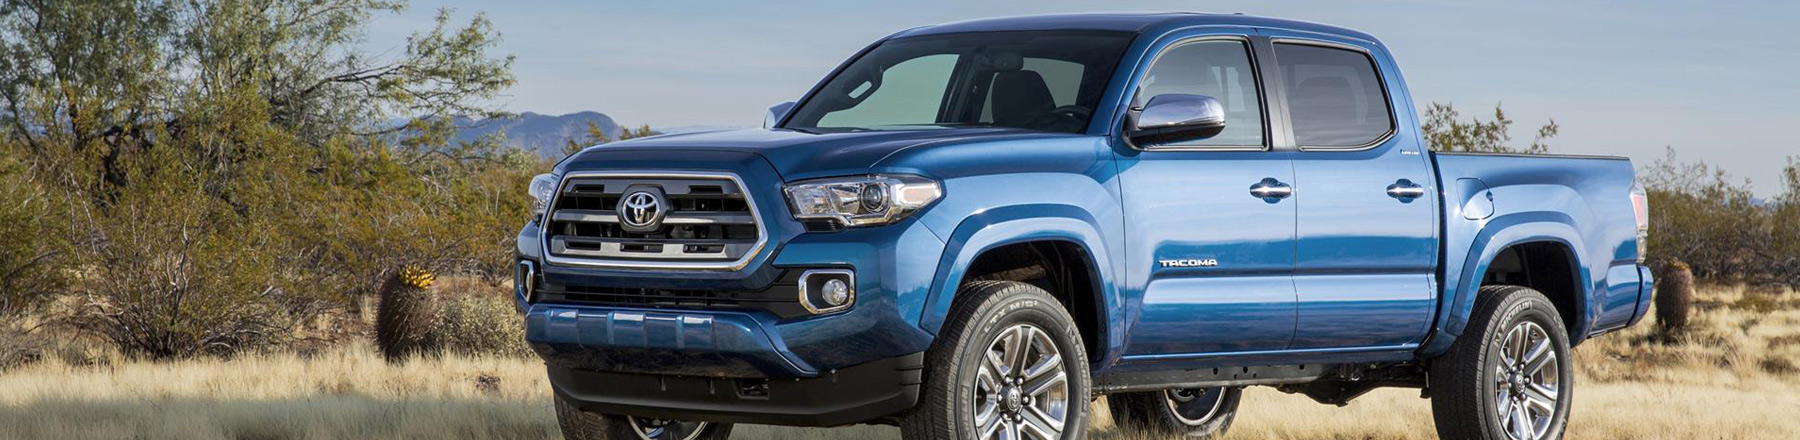 2016 Toyota Tacoma in Collingwood, ON